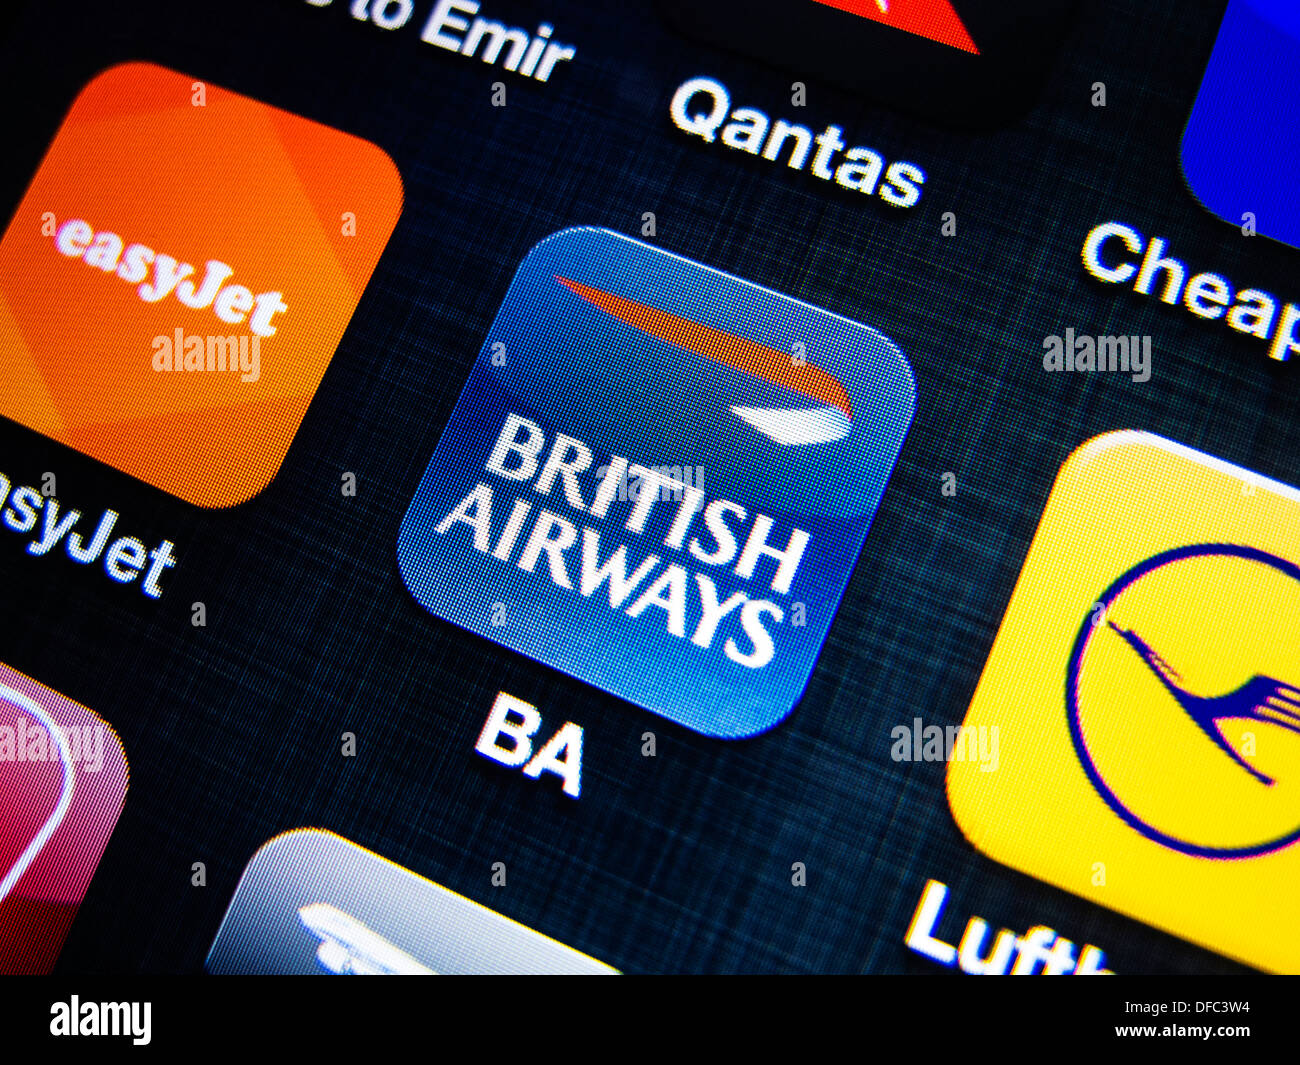 detail of British Airways airline app icon on iPhone screen - Stock Image